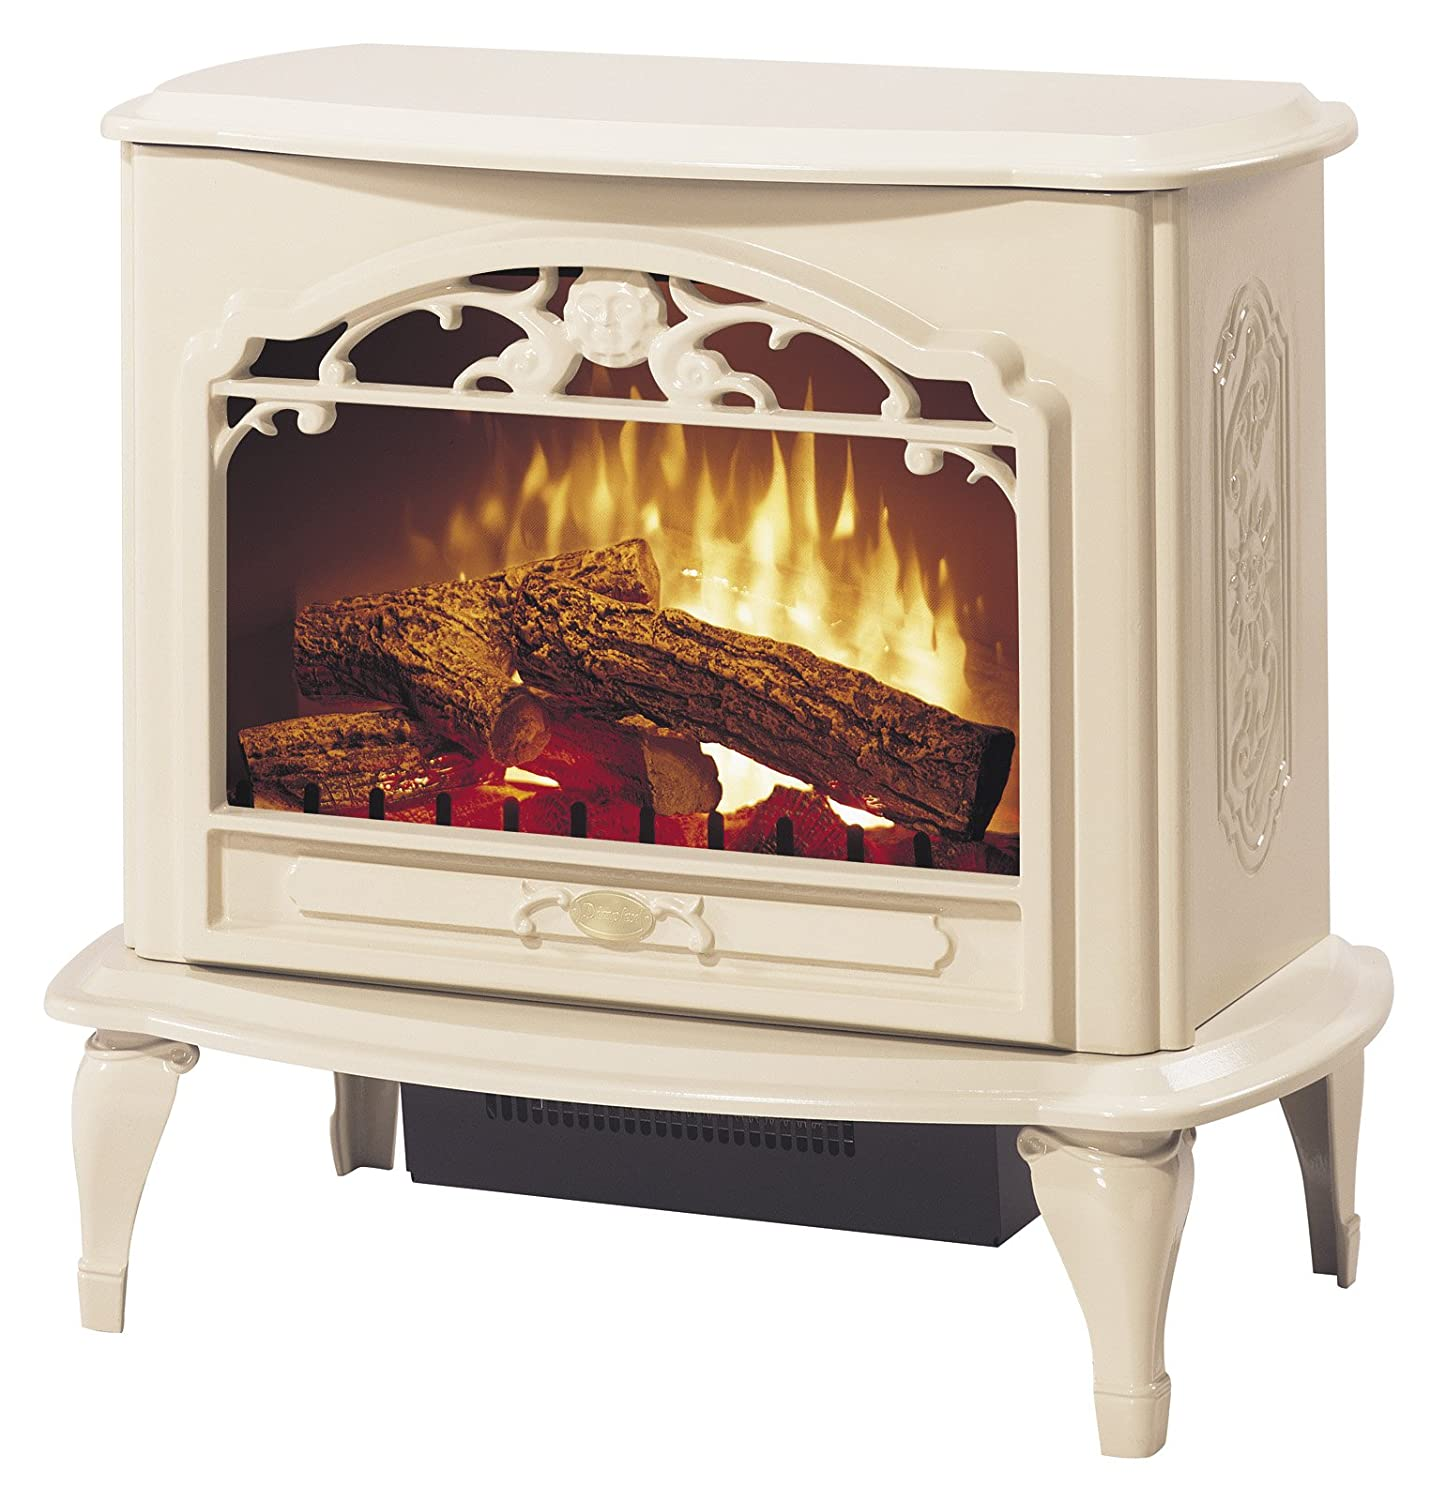 Amazon.com: Dimplex TDS8515TB Celeste Electric Stove, Glossy Black ...